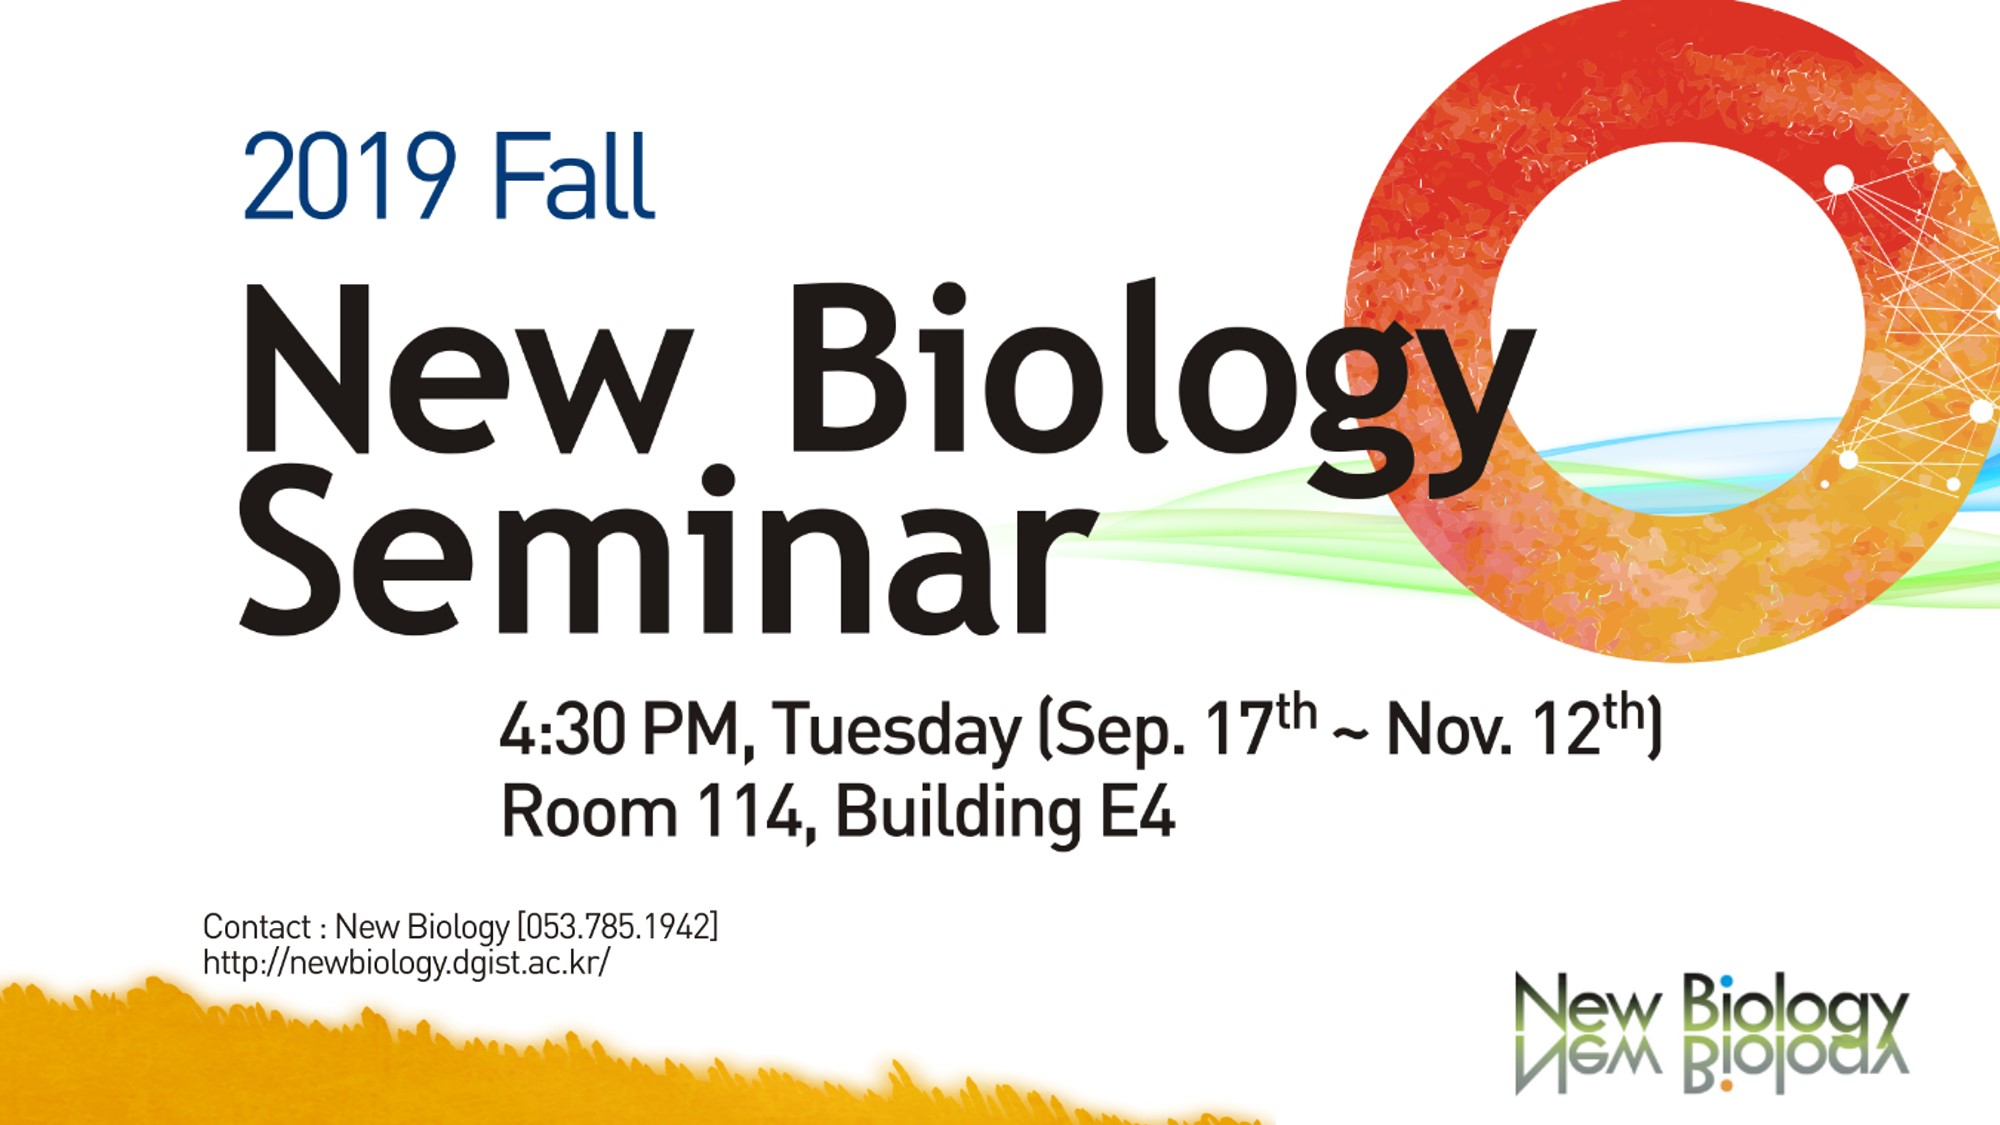 2019 Fall New Biology Seminar 이미지